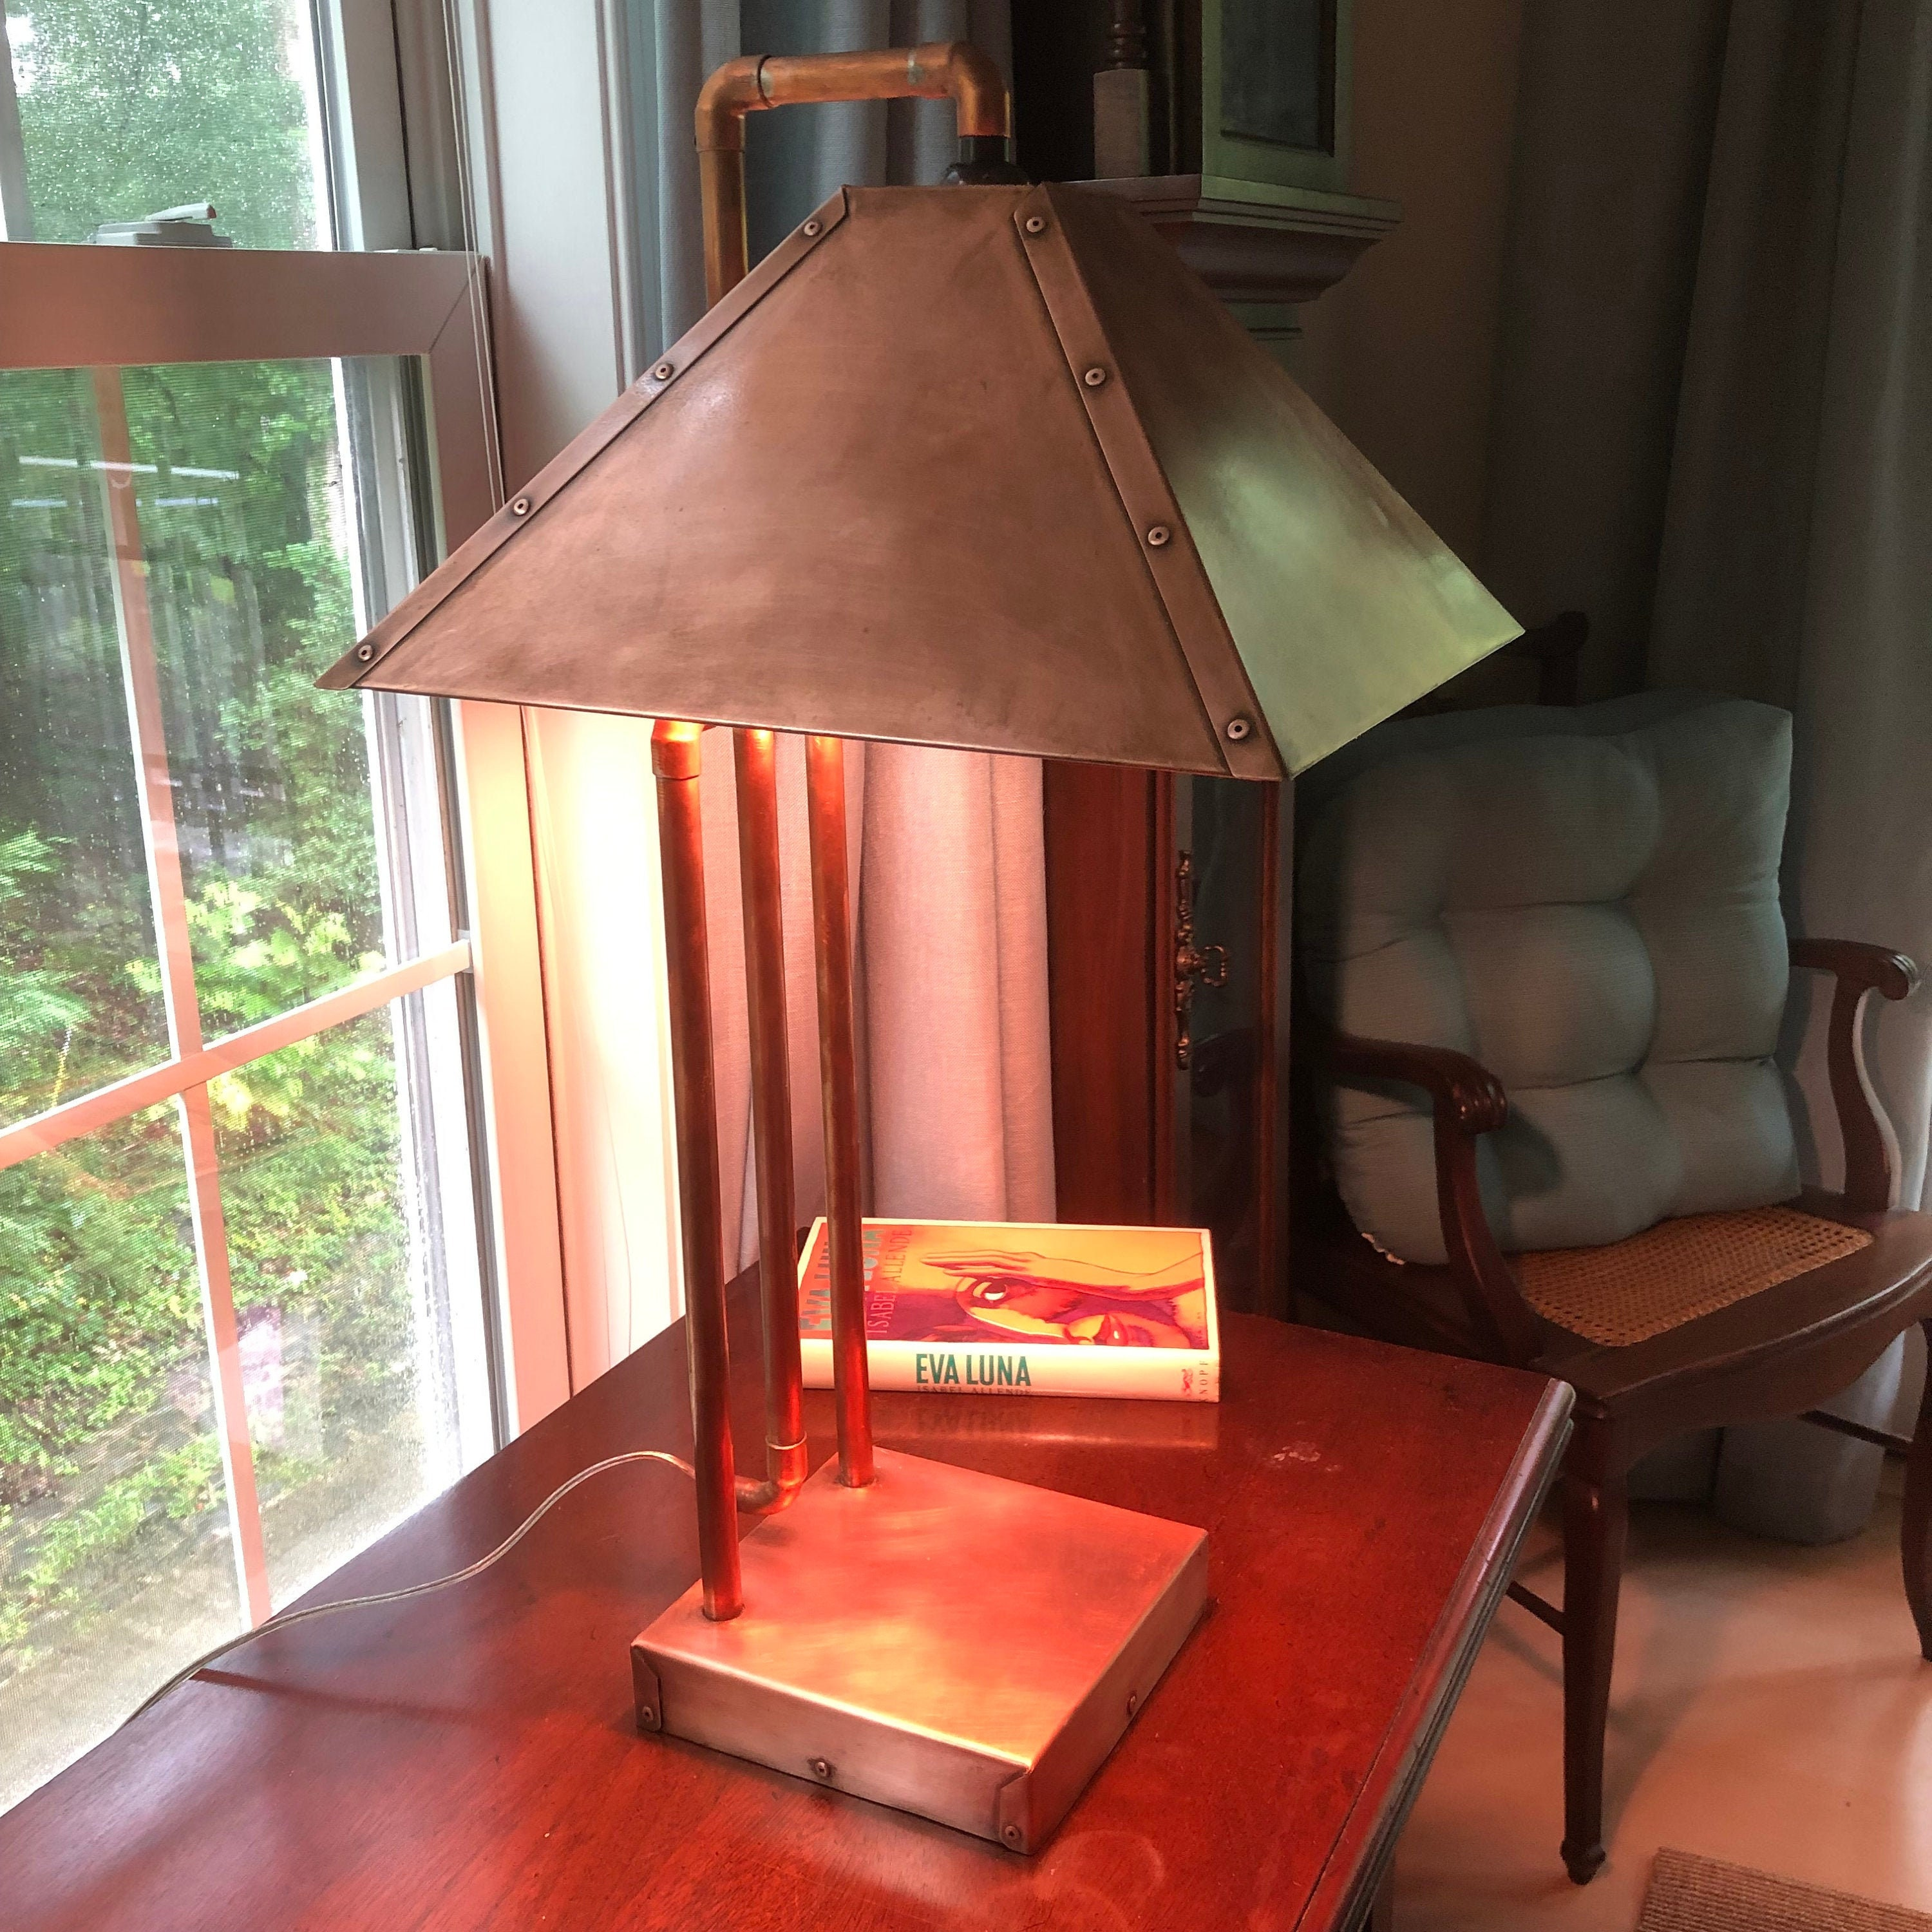 Mission Style Copper Lamps, Arts and Crafts copper or steel lamp 25